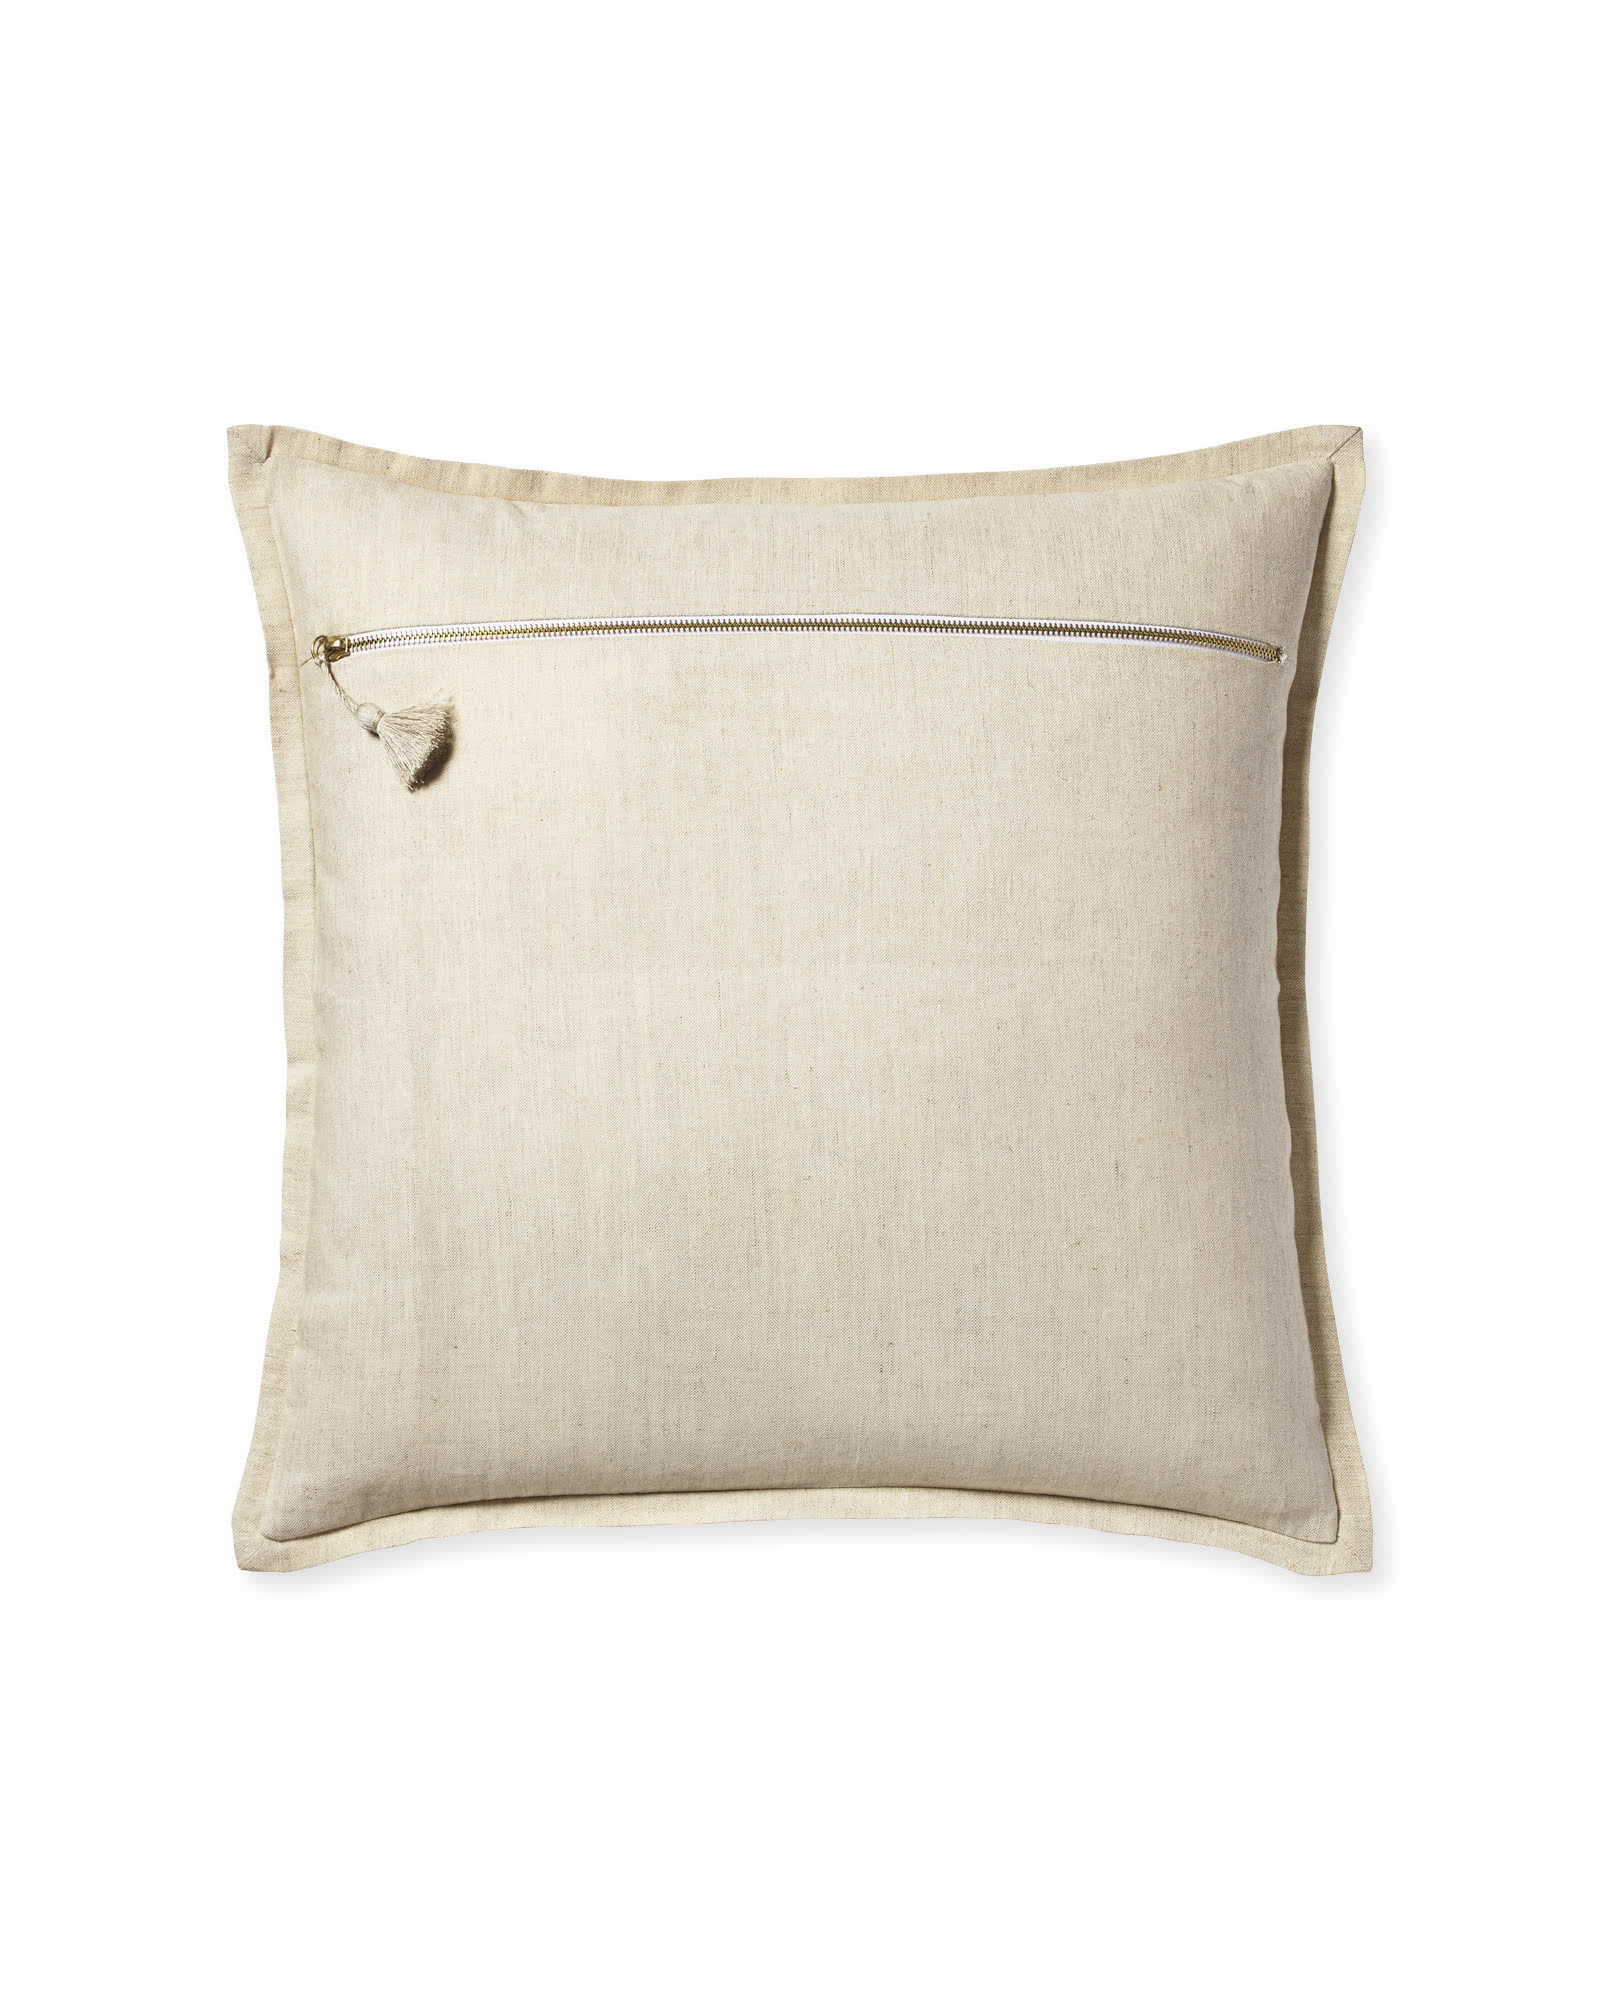 Quincy Pillow Cover,